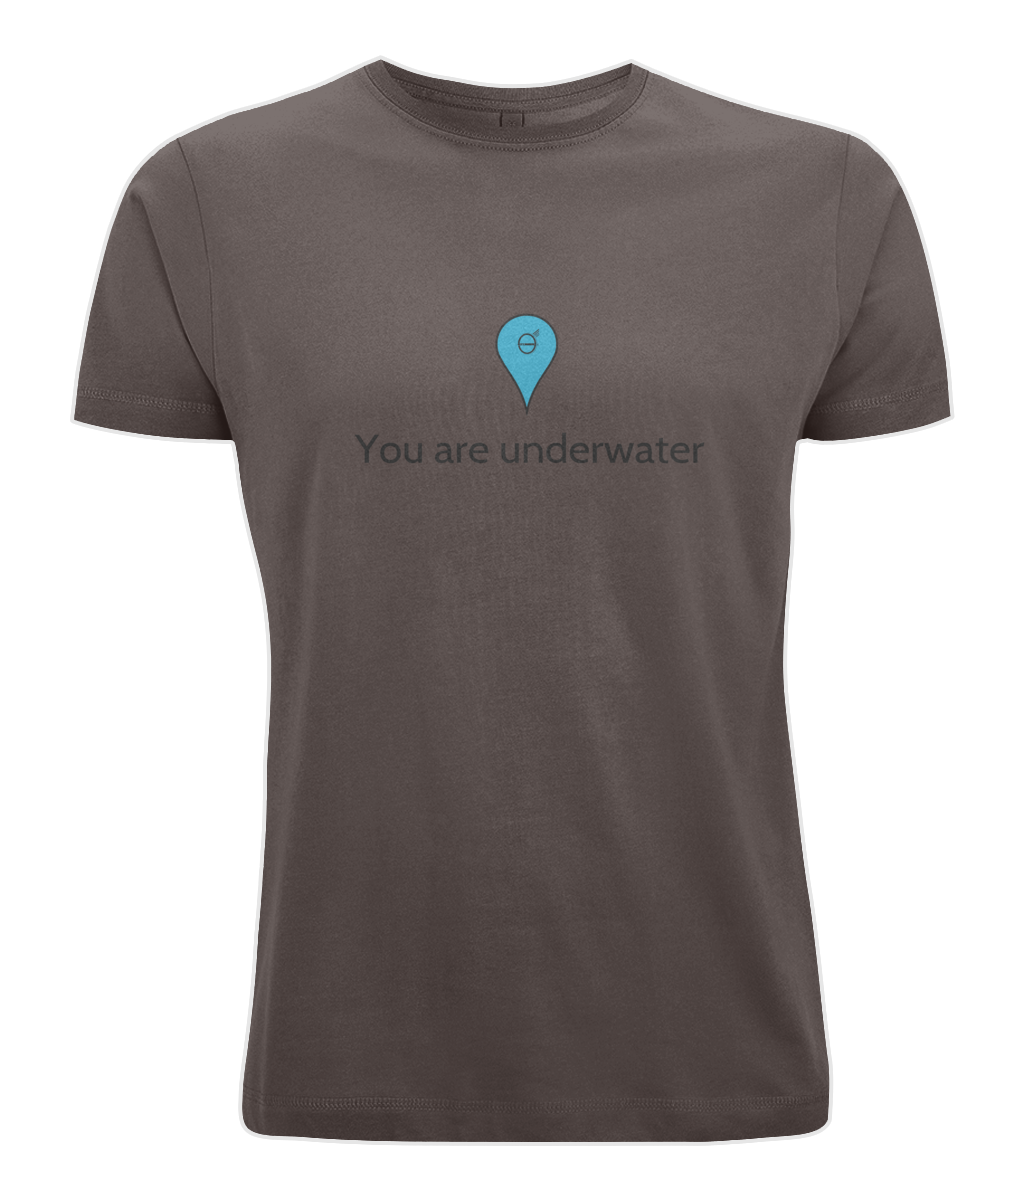 You are underwater - Clothing - Brown / X-Small - 100% cotton - Banshy